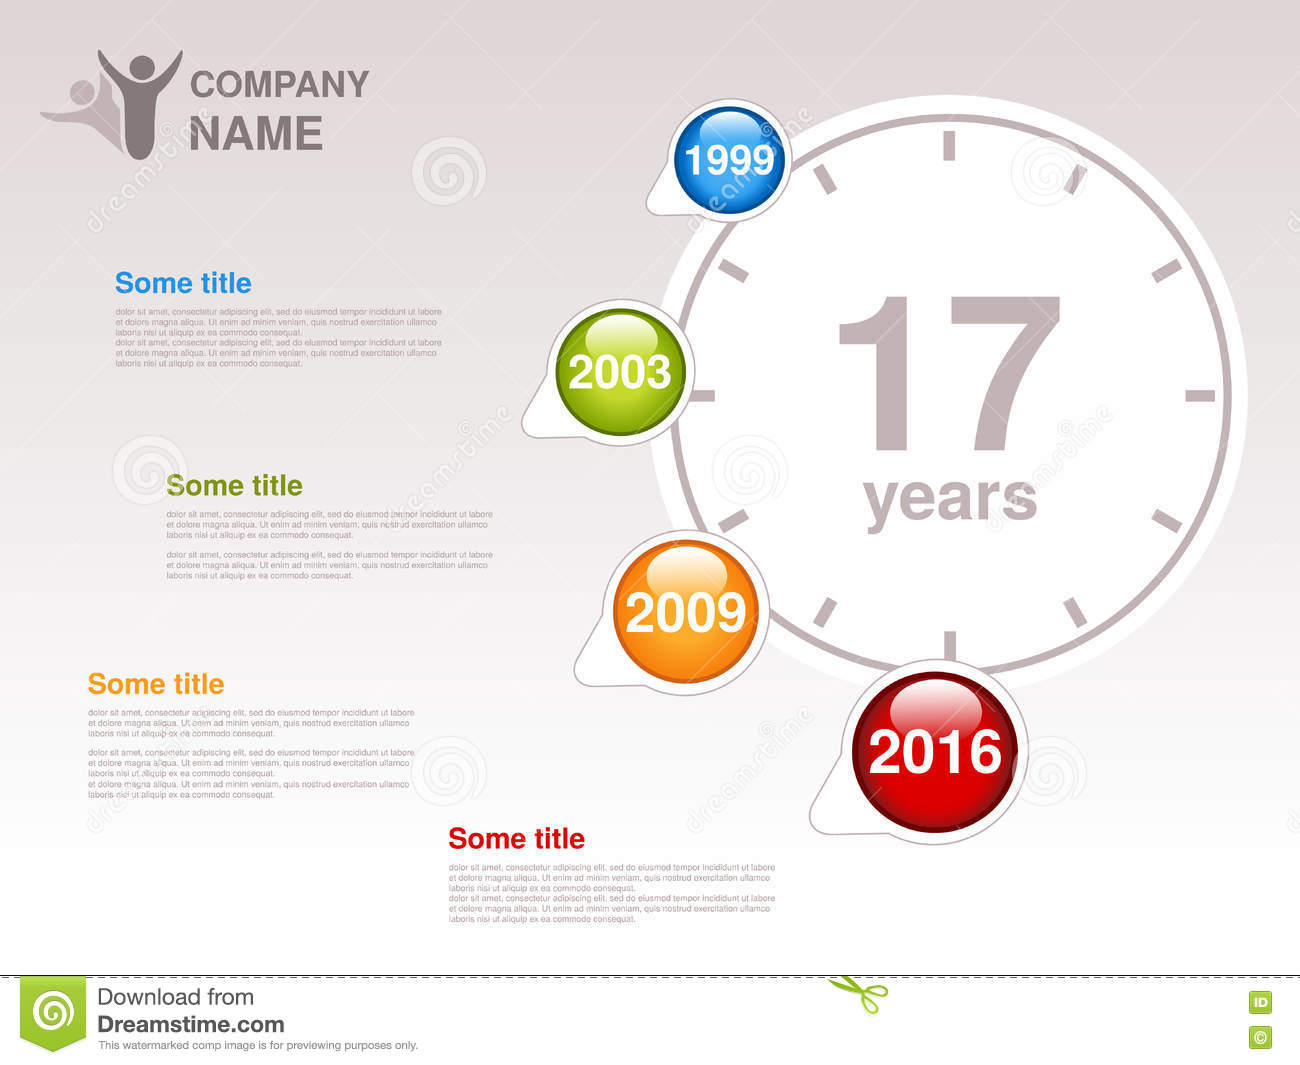 timeline infographic template for company timeline with colorful